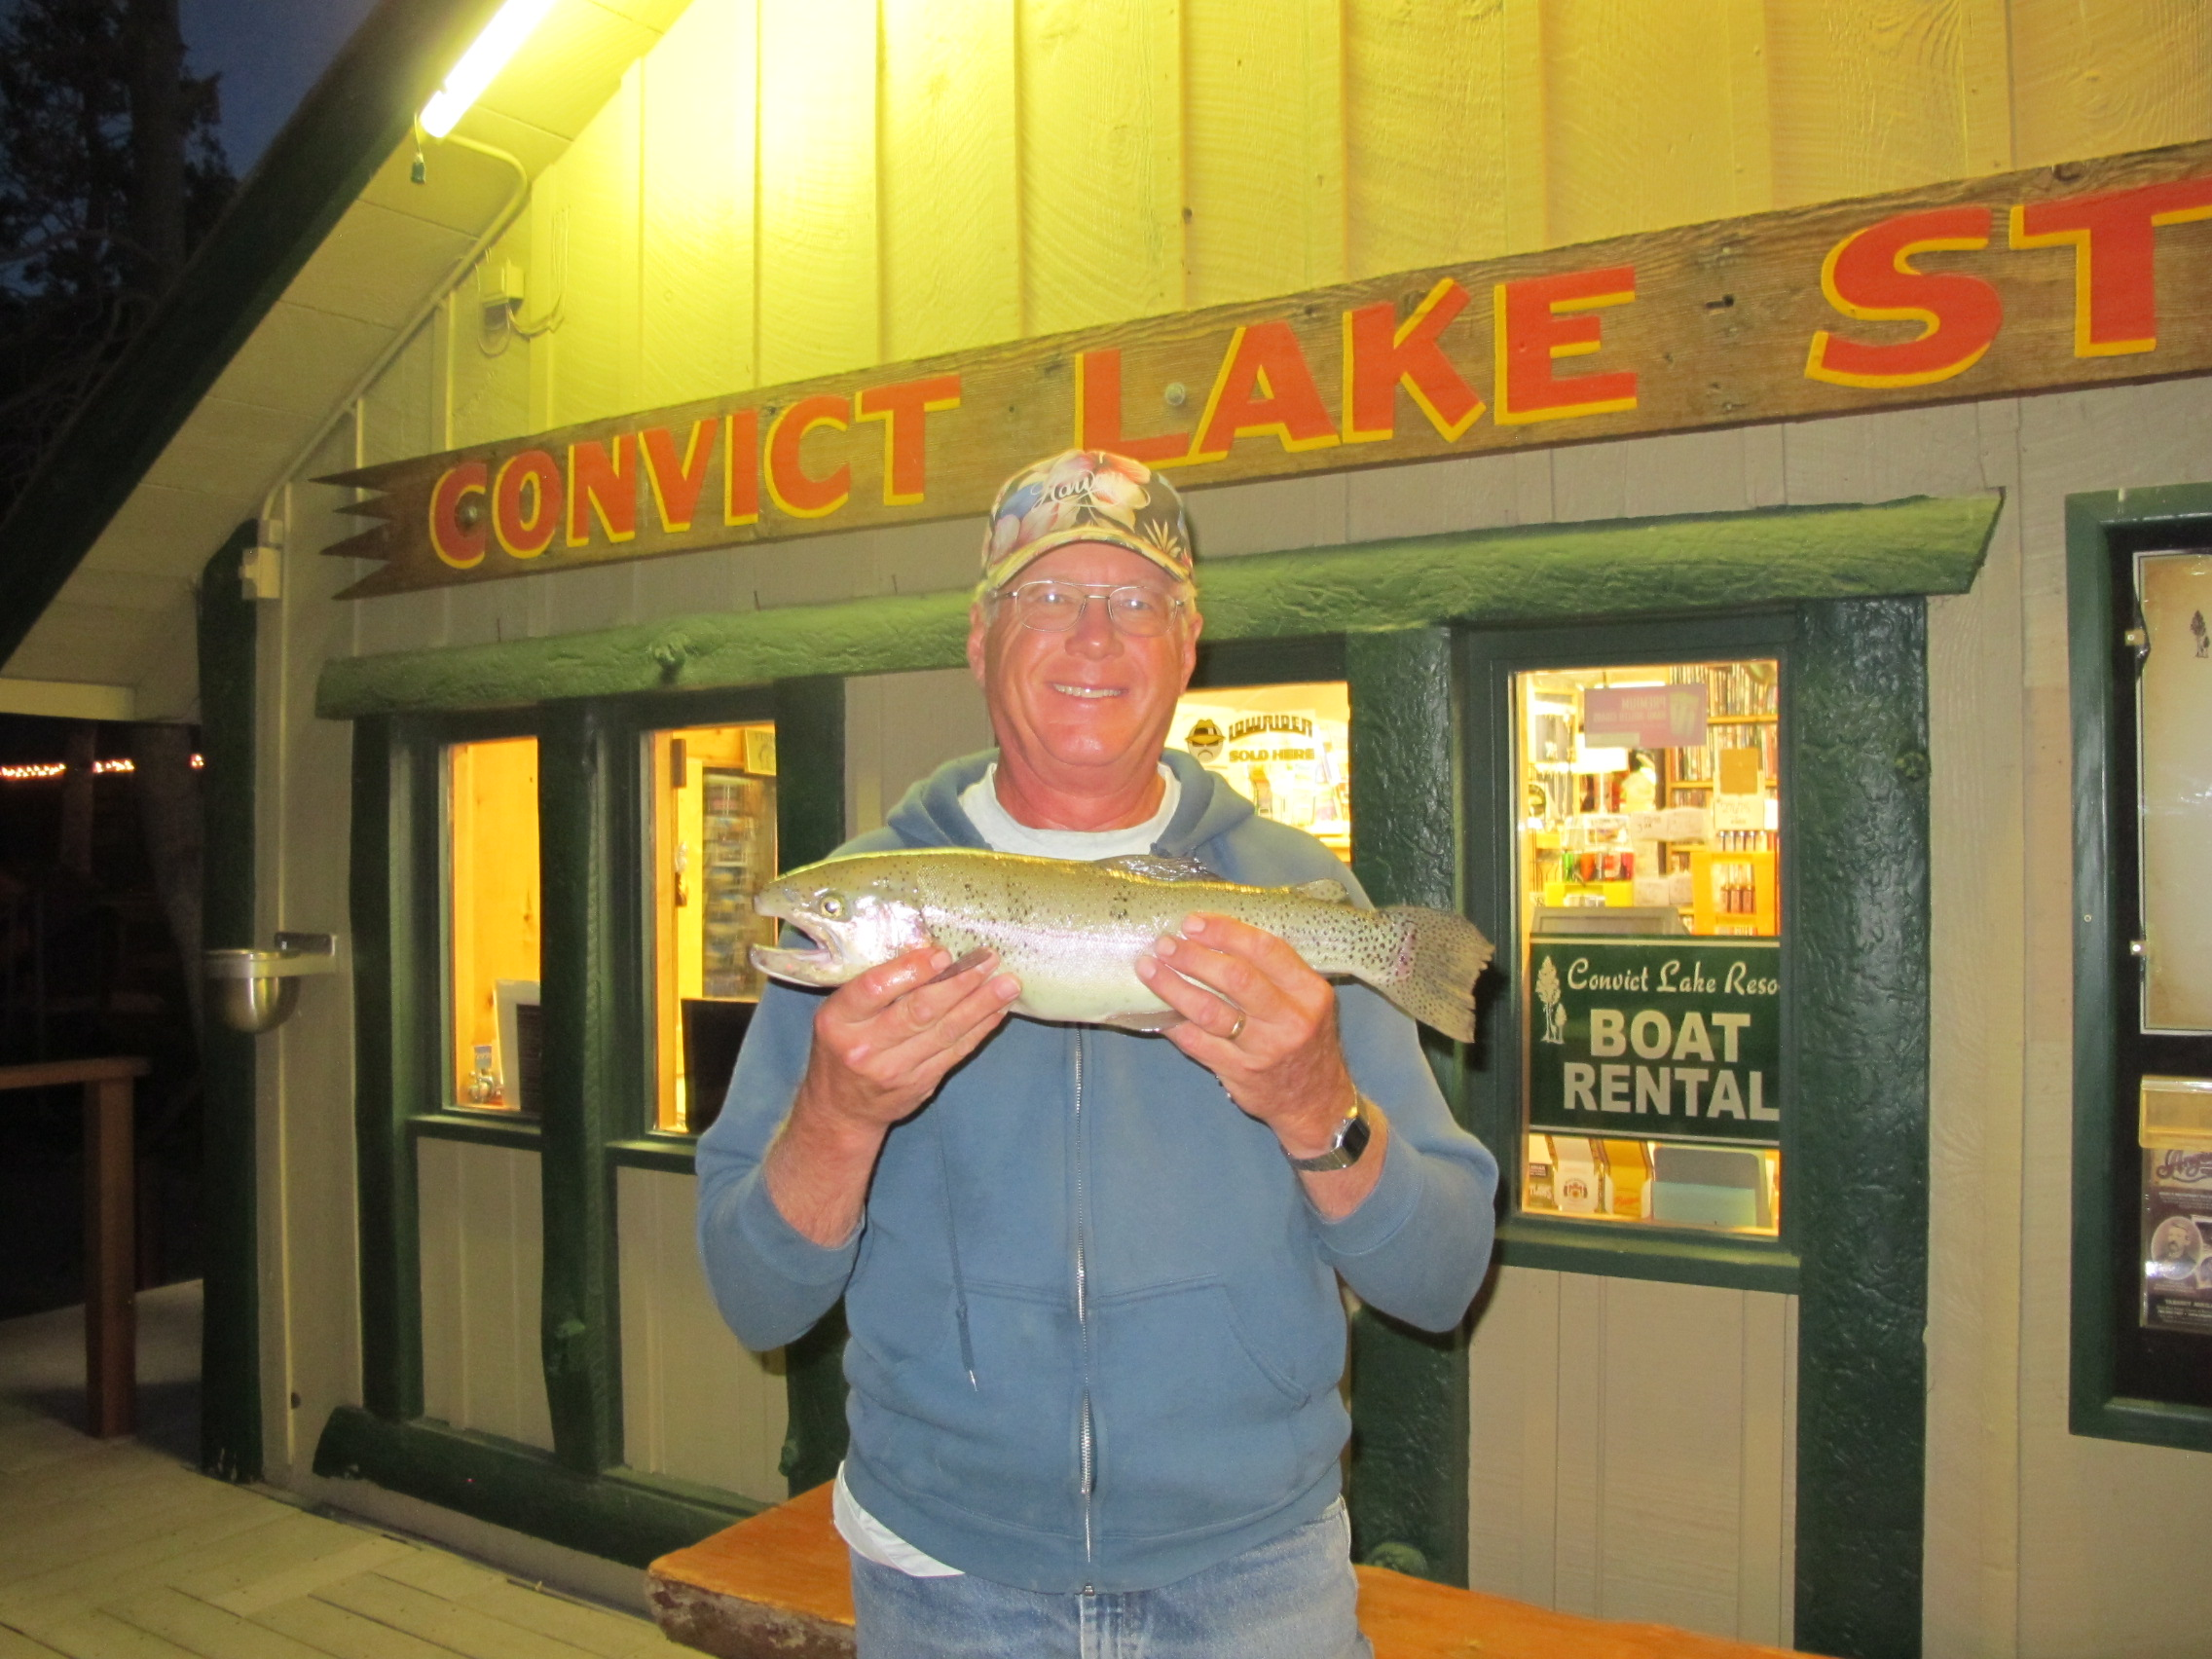 Fishing reports august 31 2013 convict lake resort for Convict lake fishing report